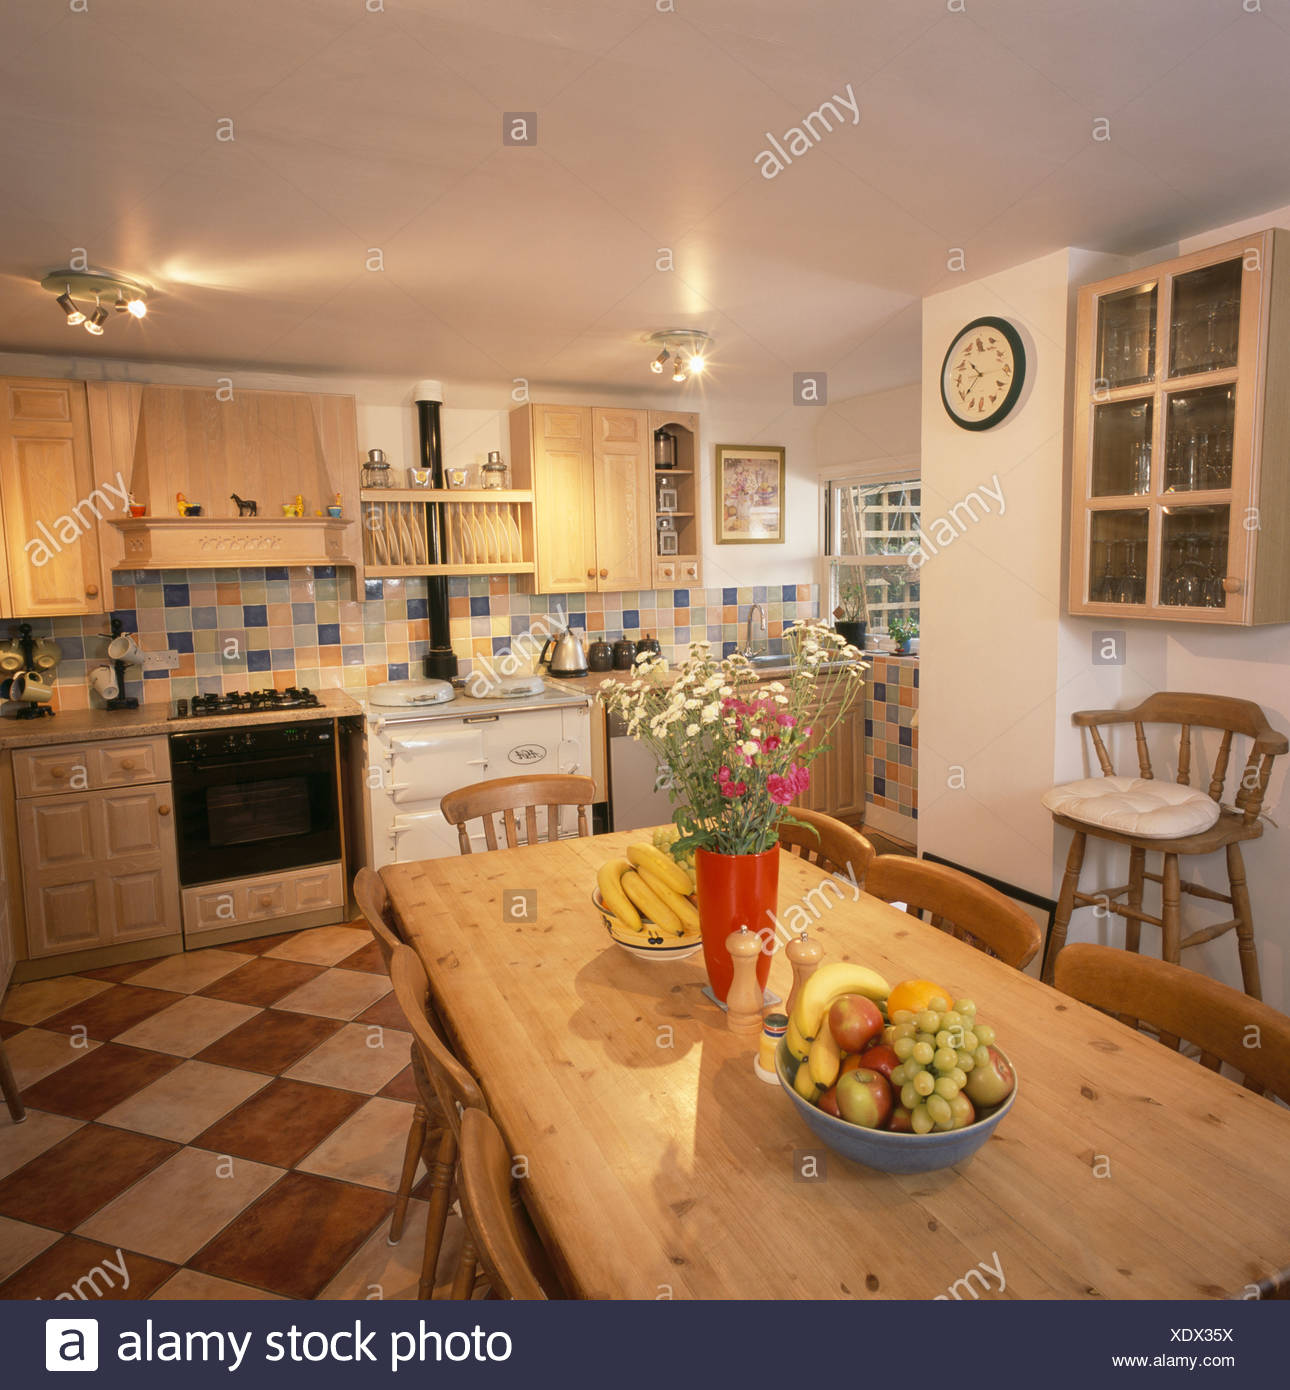 Ceiling lights and old pine table and chairs in country kitchen with ceiling lights and old pine table and chairs in country kitchen with creambrown checker board flooring aloadofball Gallery